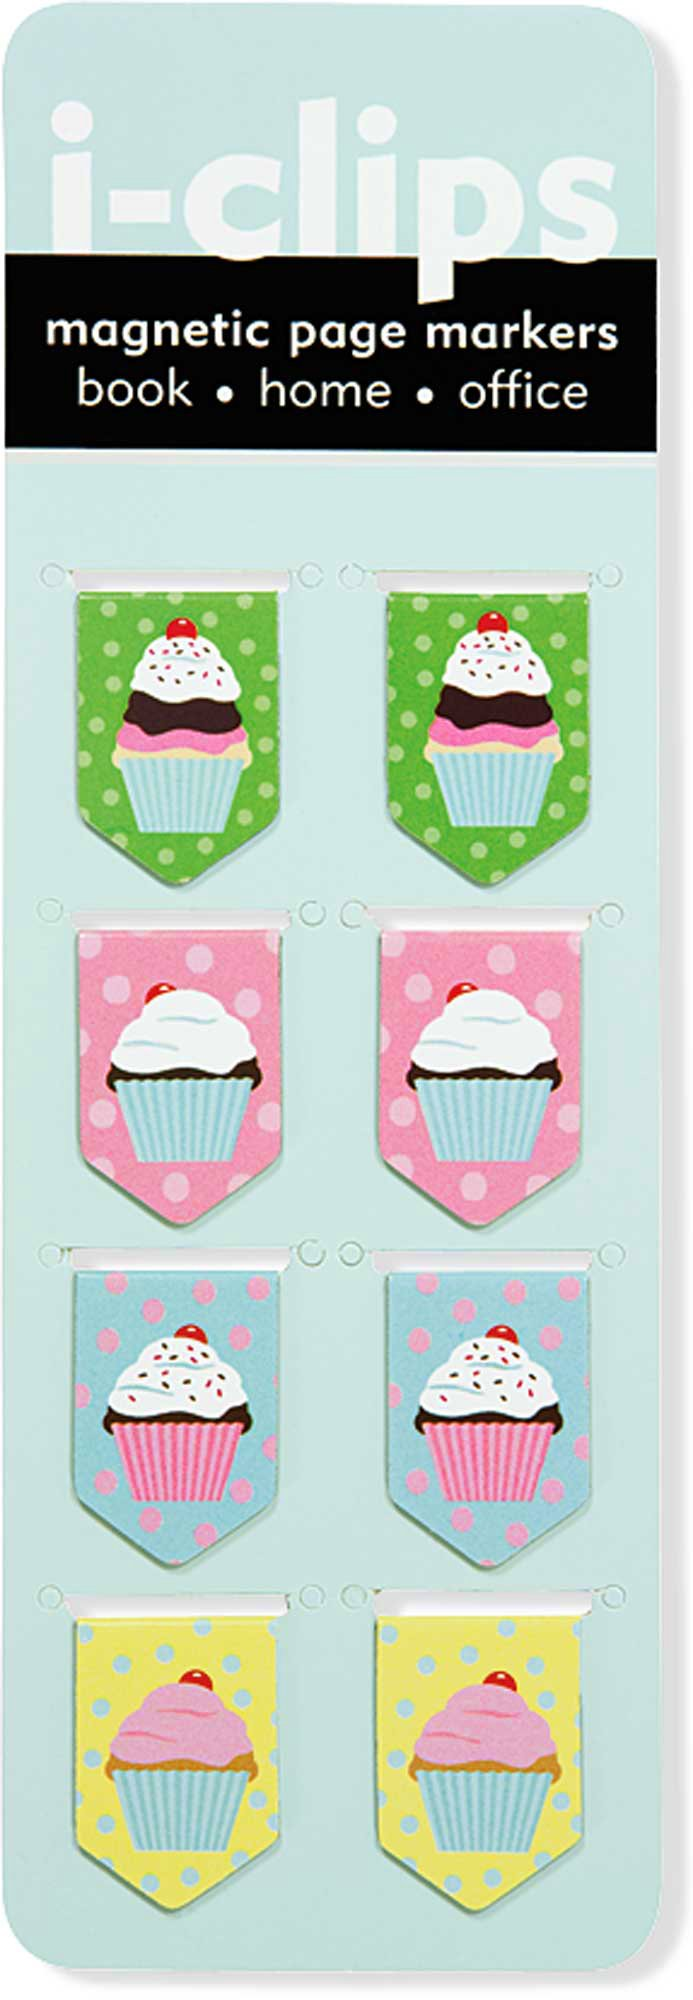 Cupcake i-clips Magnetic Bookmarks by Peter Pauper Press (Image #1)